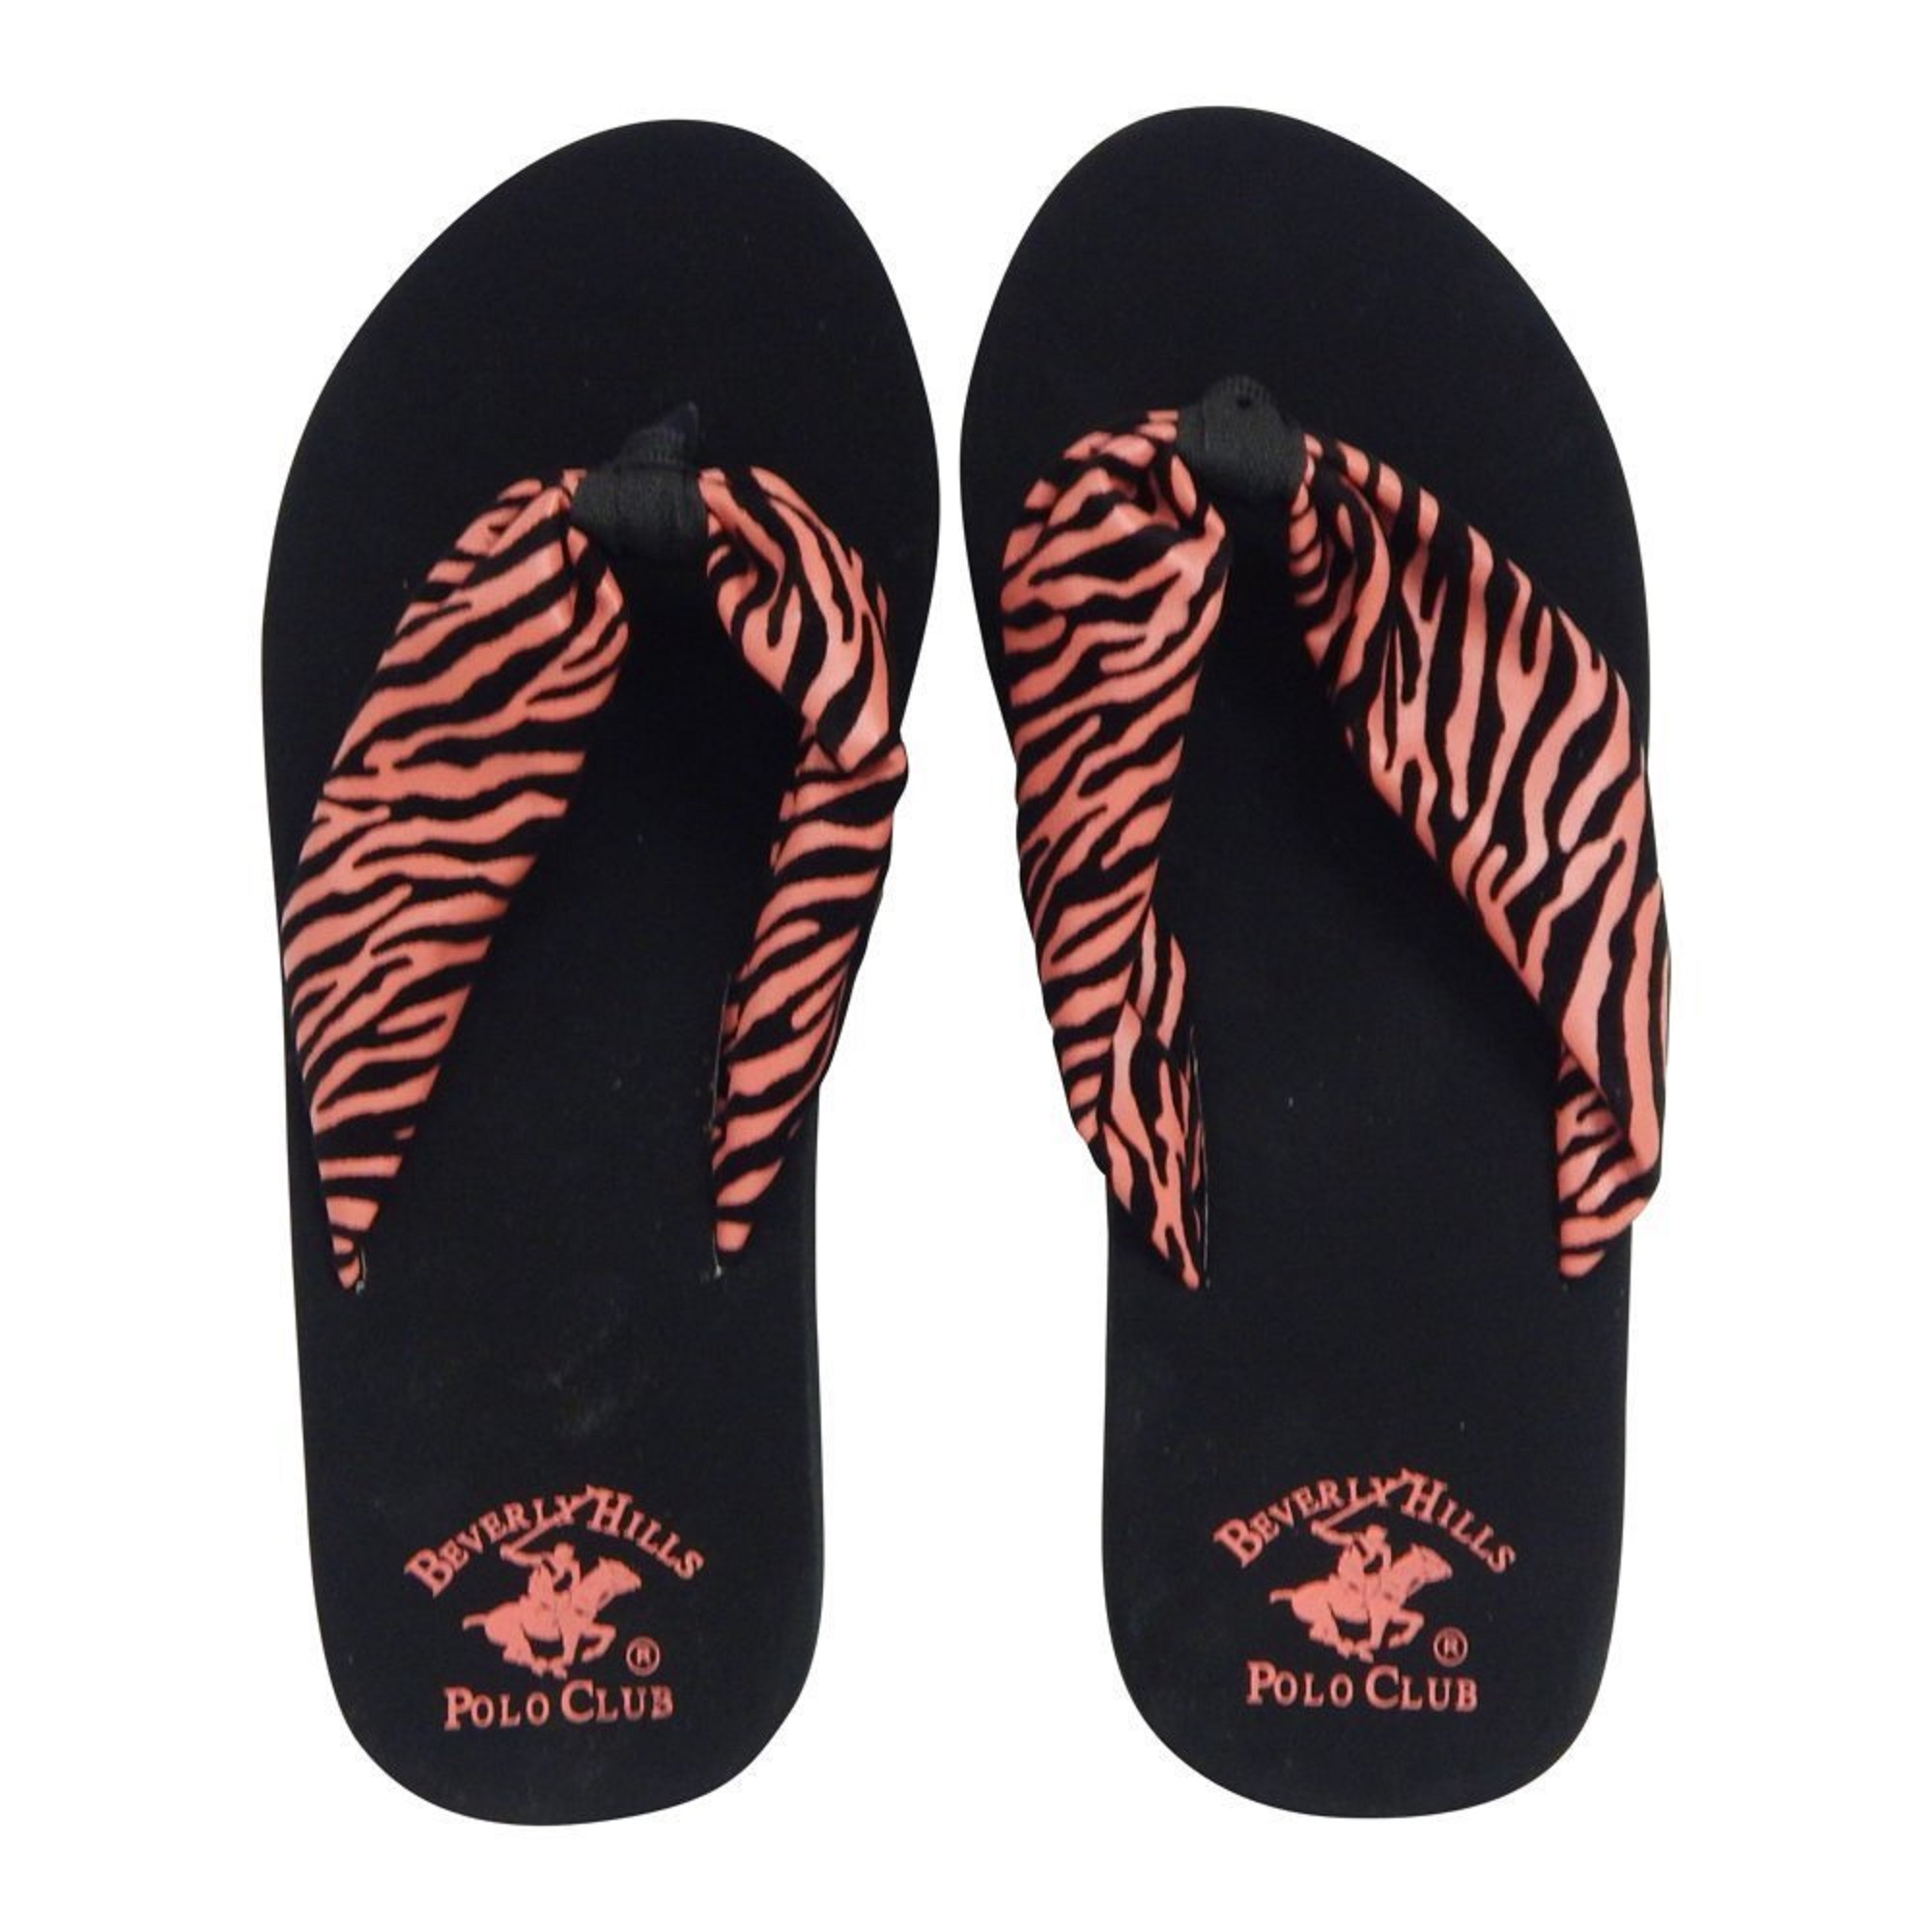 Beverly Hills Polo Club Rona Women's Zebra Platform Wedge Flip Flop Sandal Thong (6 US, Coral & Black)